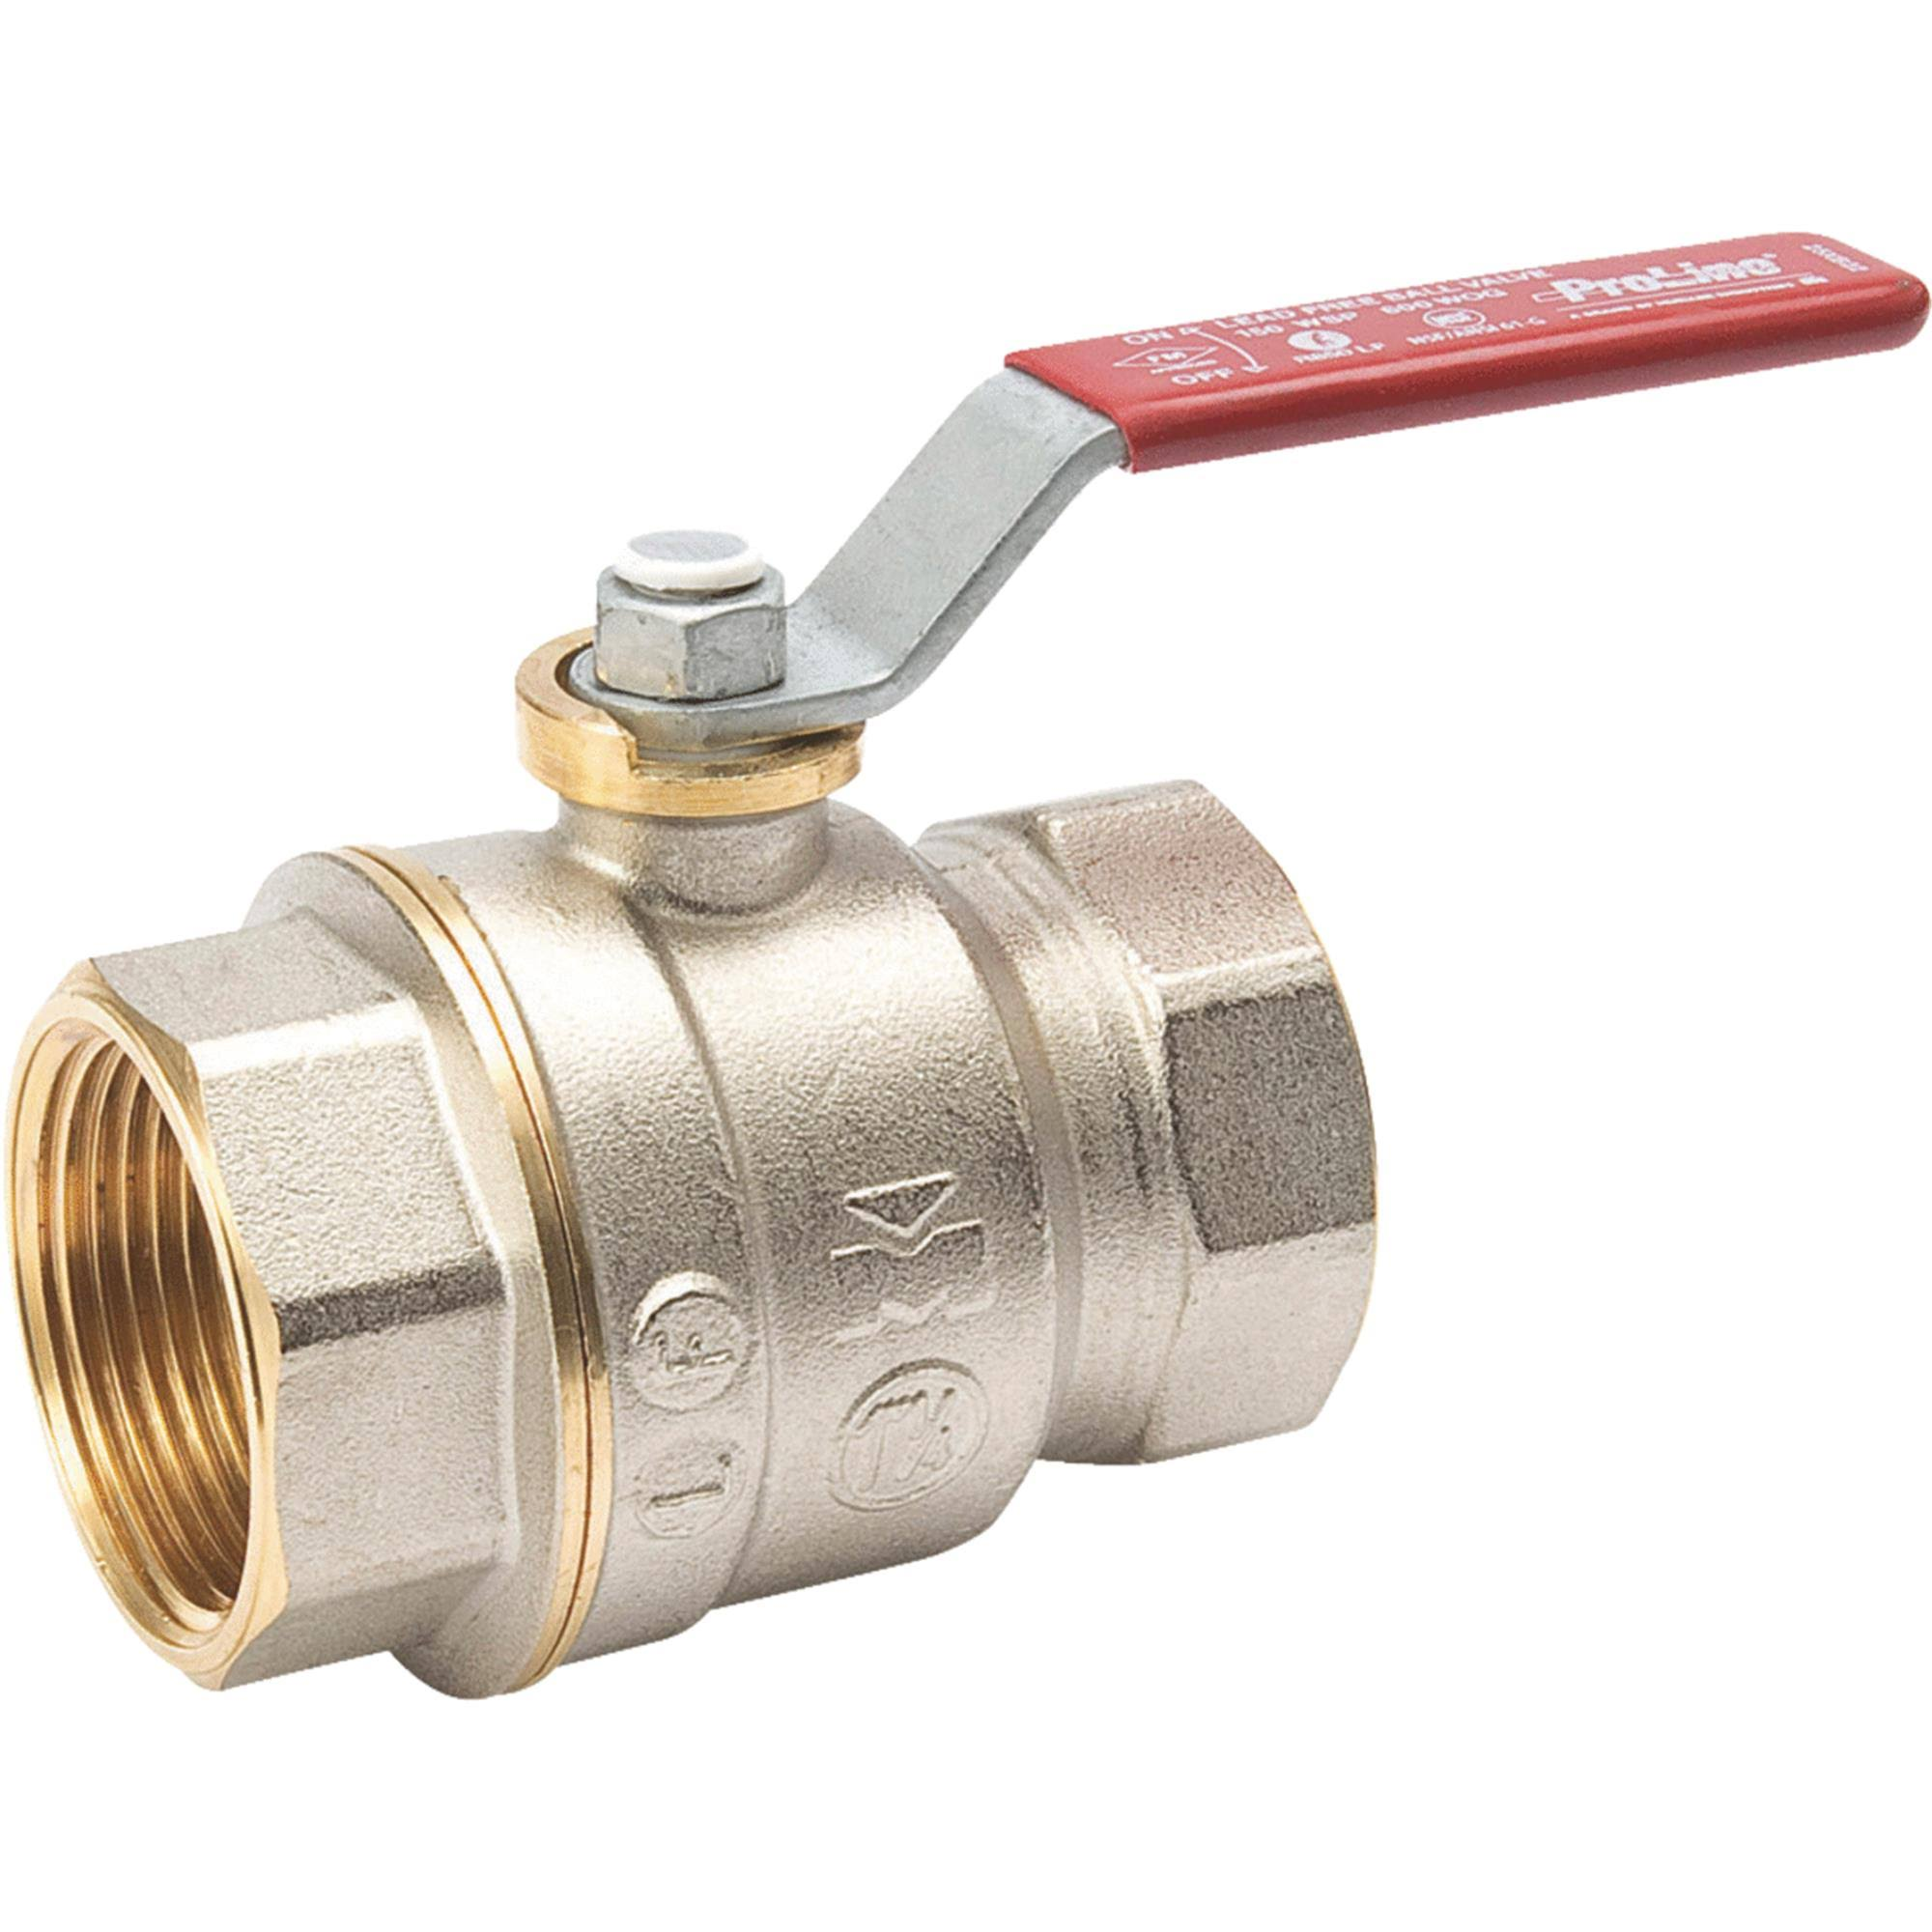 Mueller Lead Threaded Ball Valve - 1 1/4""